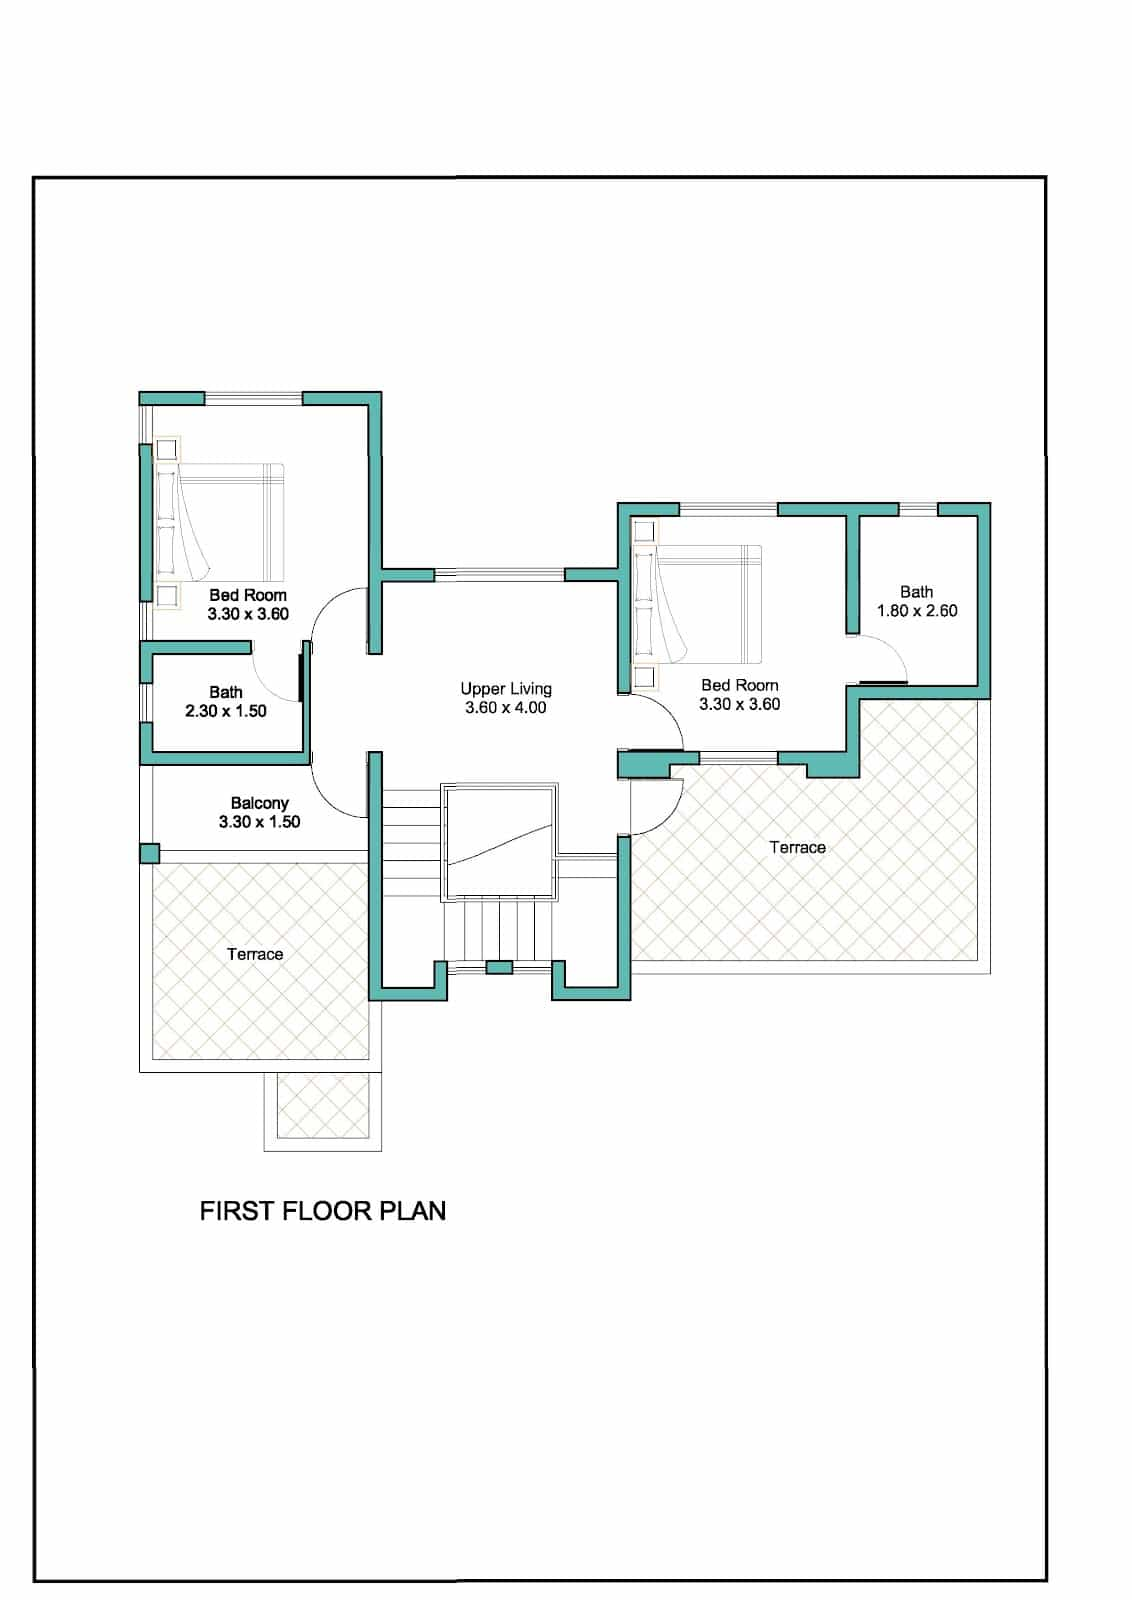 2000 Sq Ft Modern House Plans Contemporary Kerala House Plan At 2000 Sq Ft